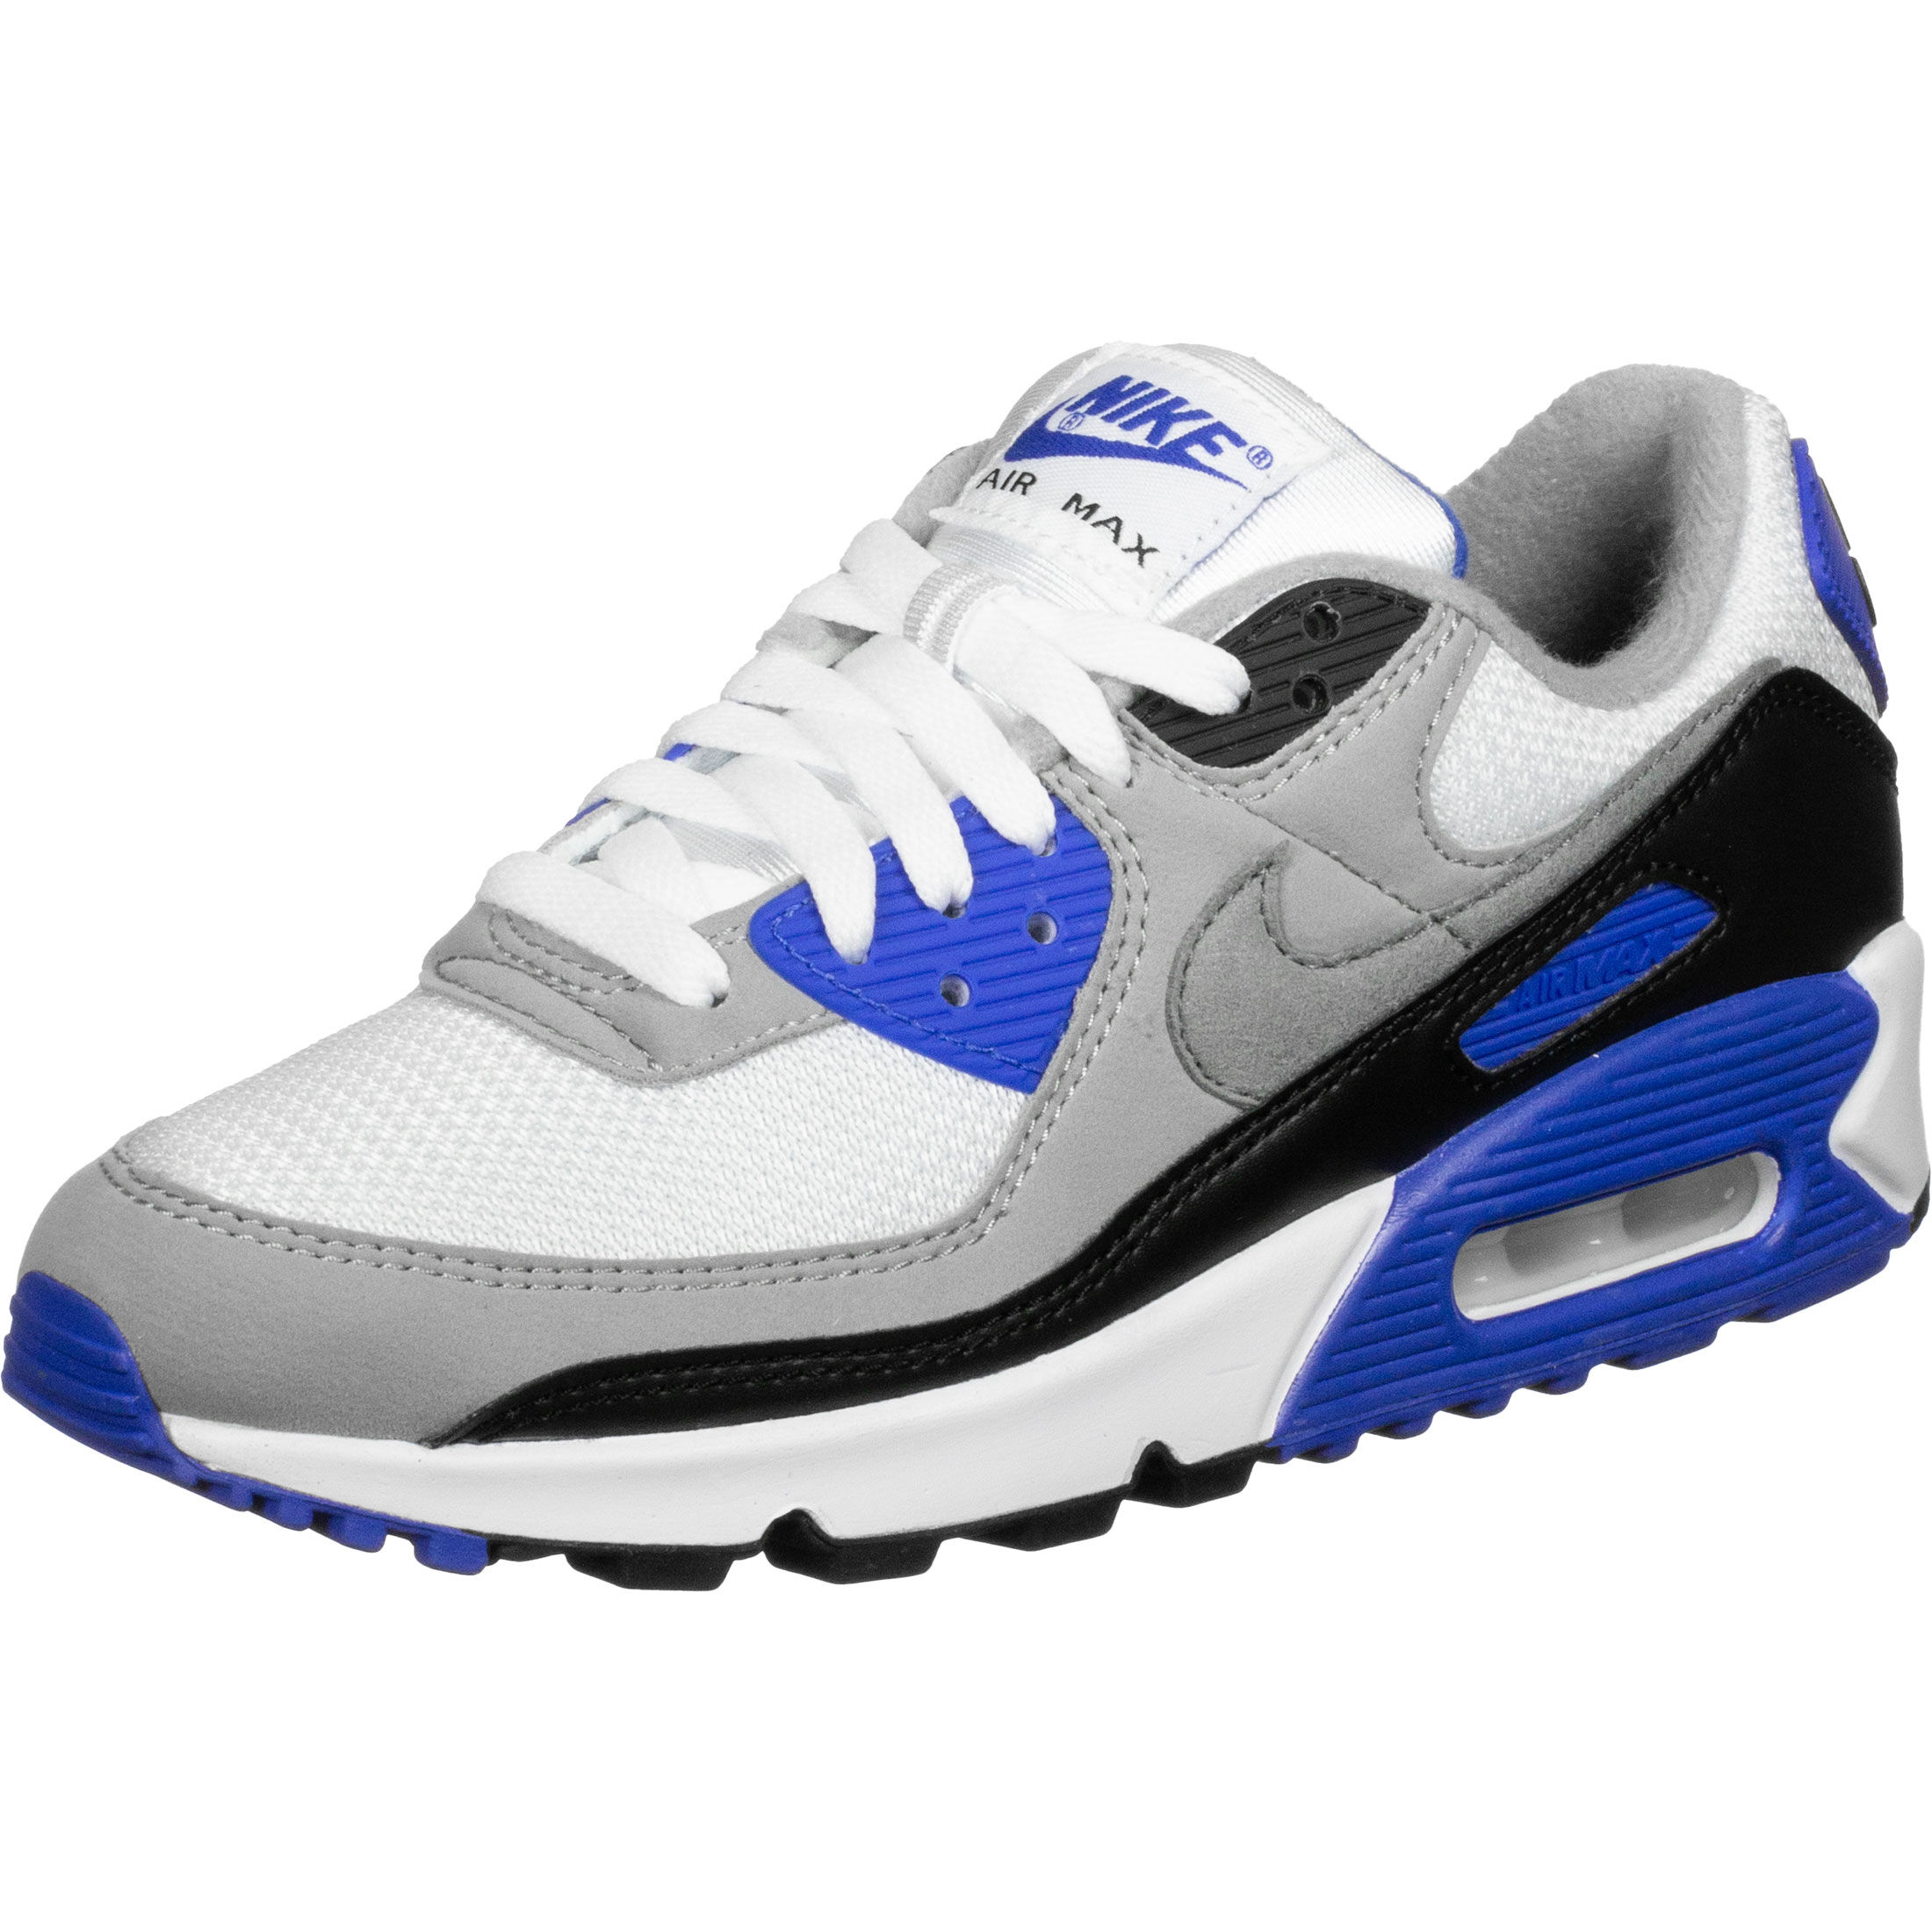 Air Max 90 Baskets low Hommes chez Stylefile